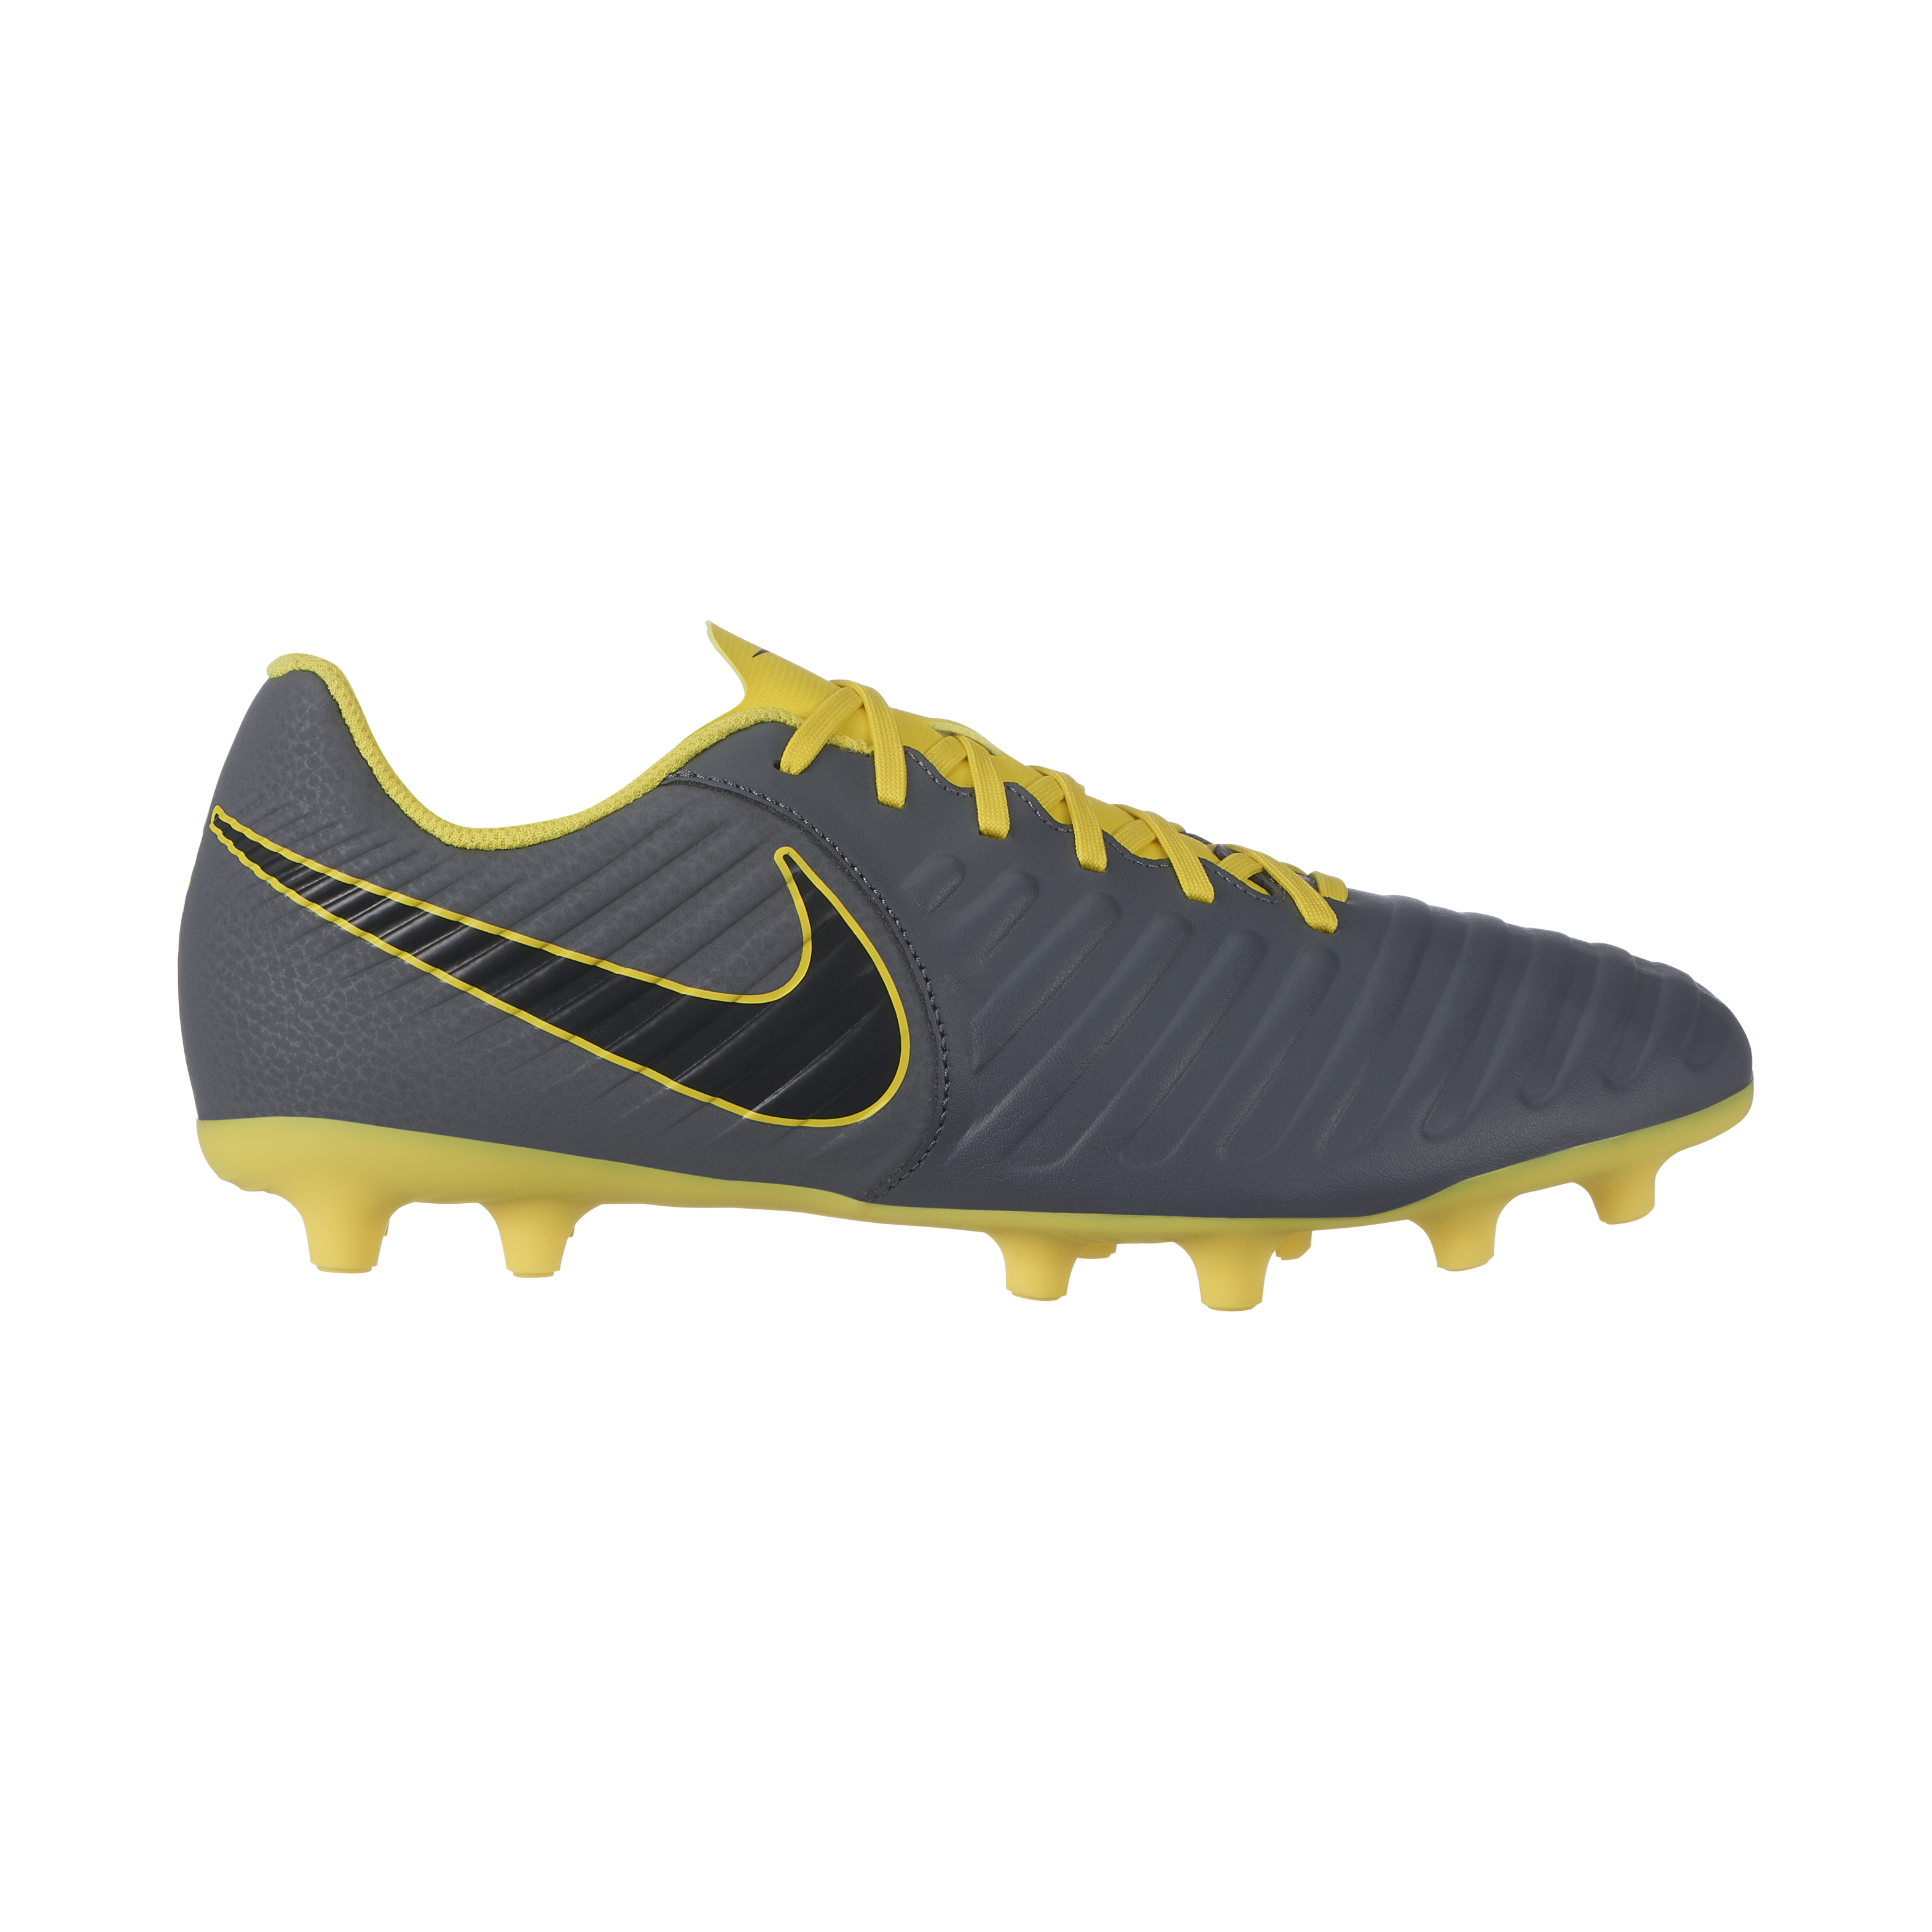 SCARPE SNEAKERS CALCIO UOMO NIKE LEGEND 7 CLUB FG AO2597 070 ORIGINALE AI